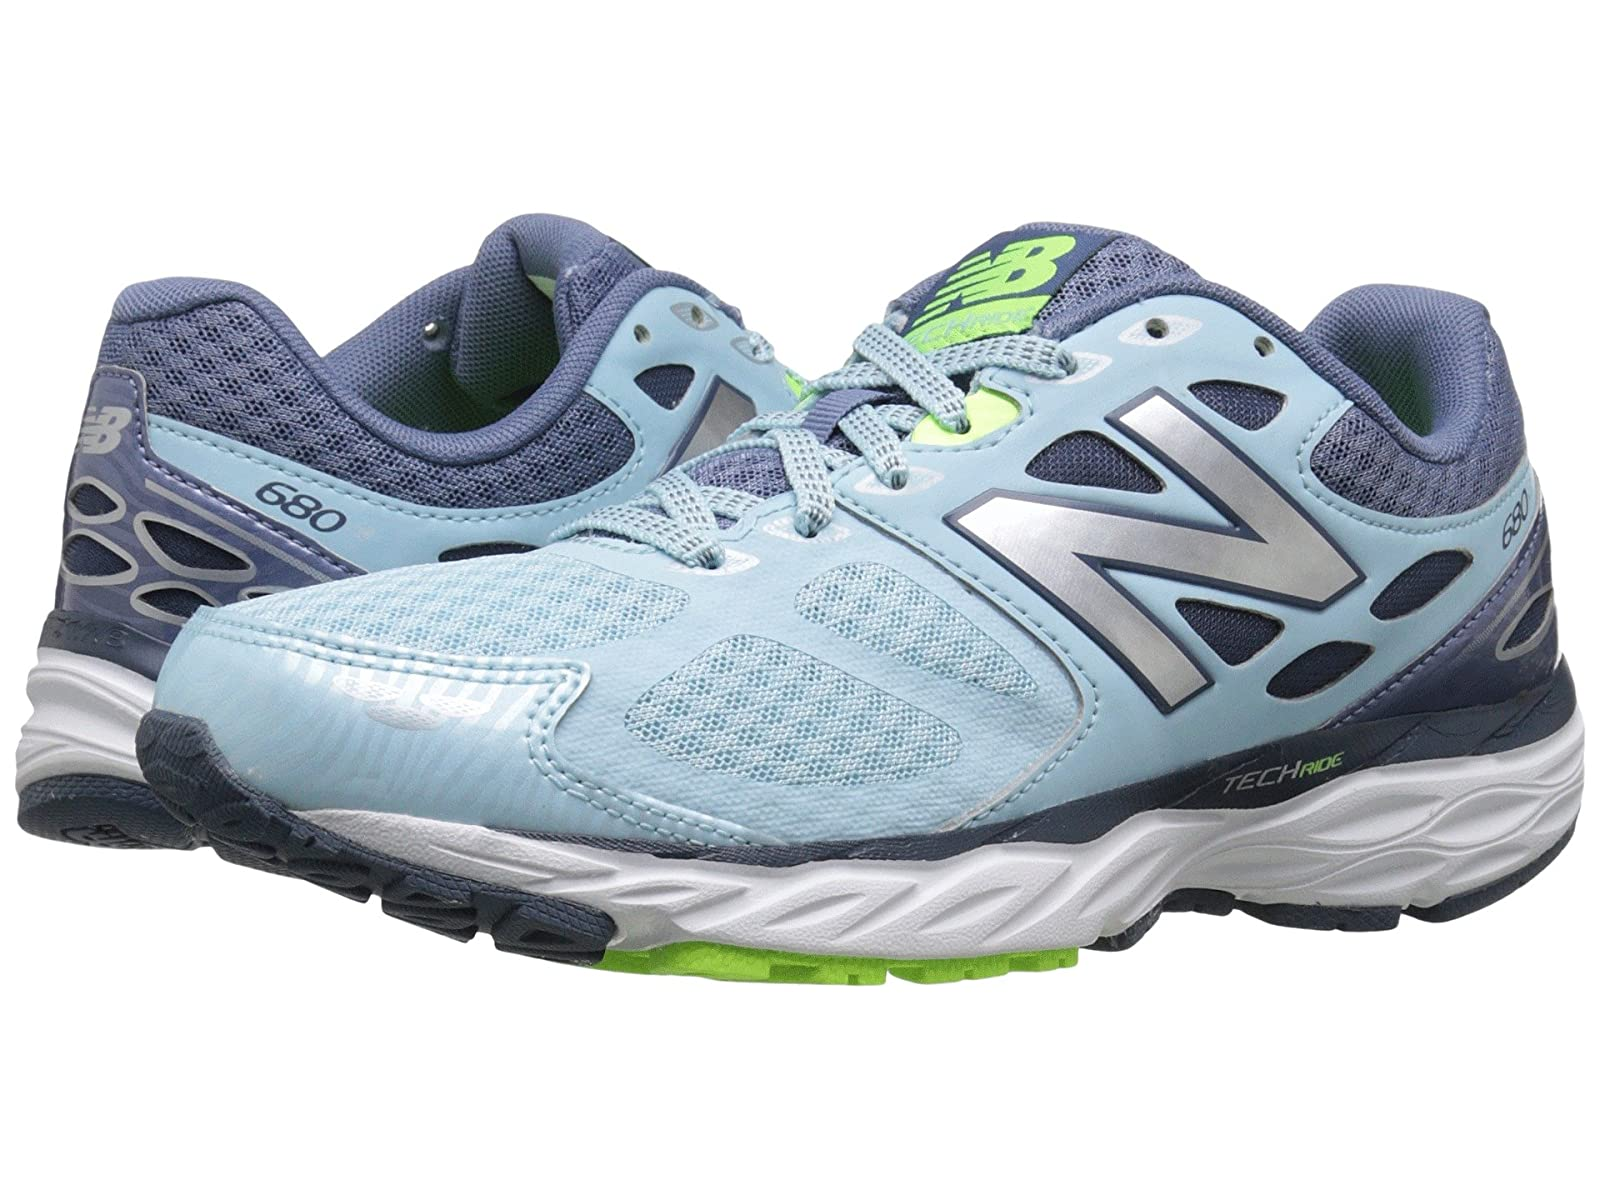 New Balance W680v3Cheap and distinctive eye-catching shoes